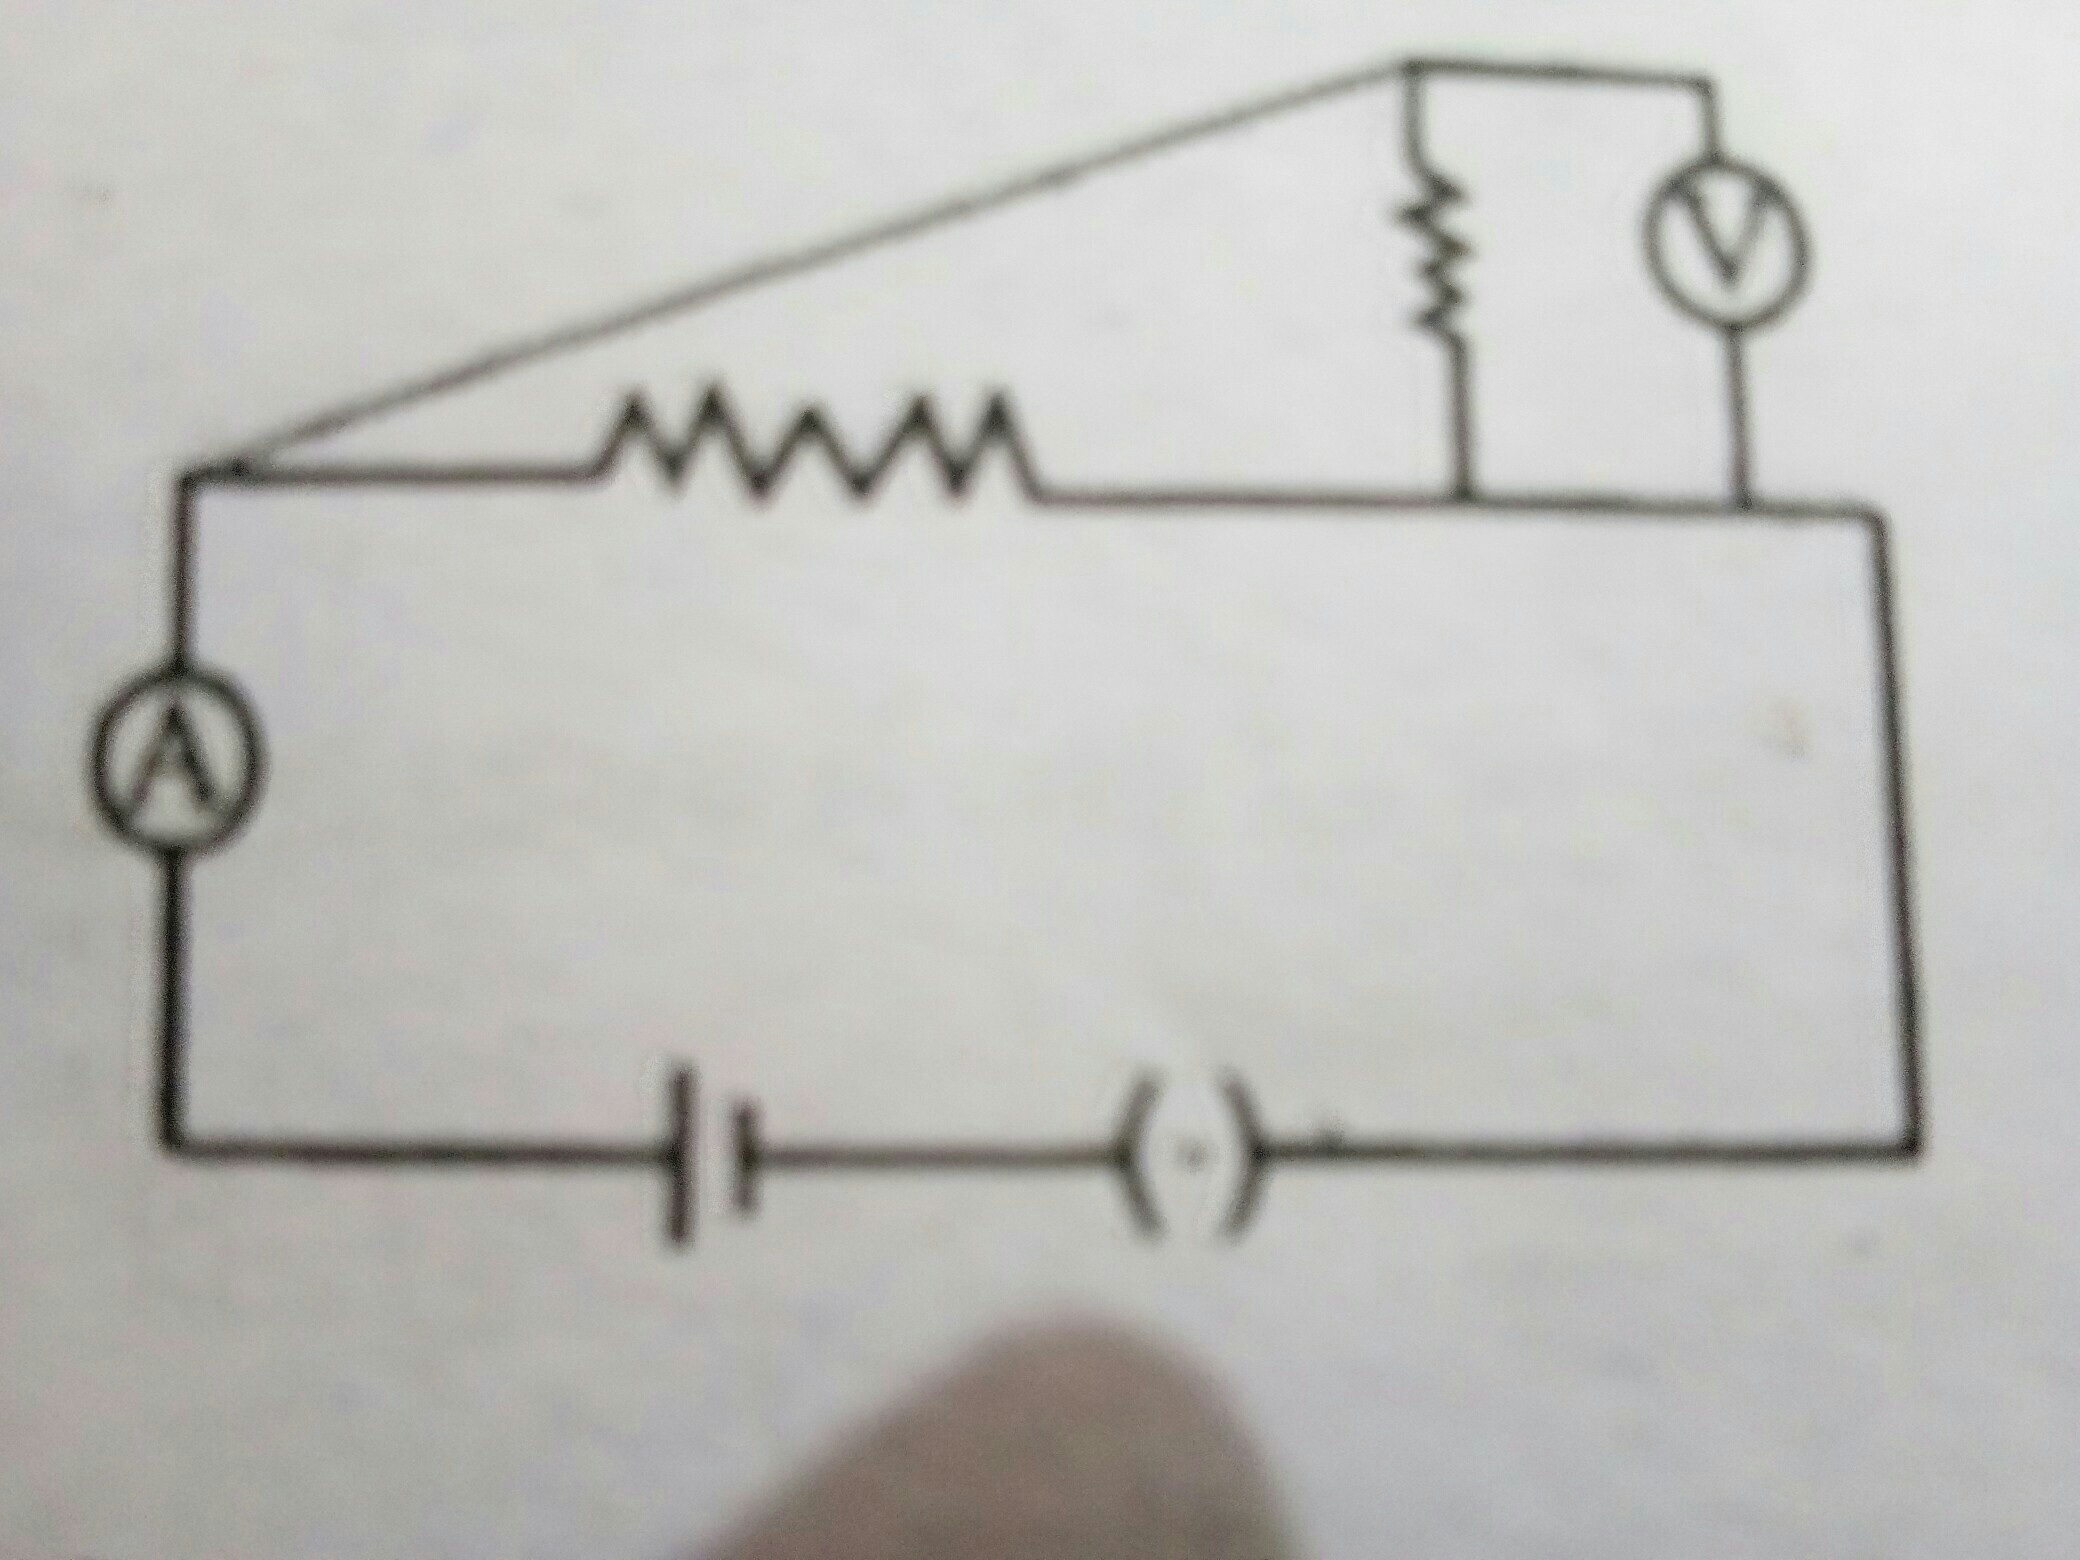 which two circuit components are connected in parallel in the ... on